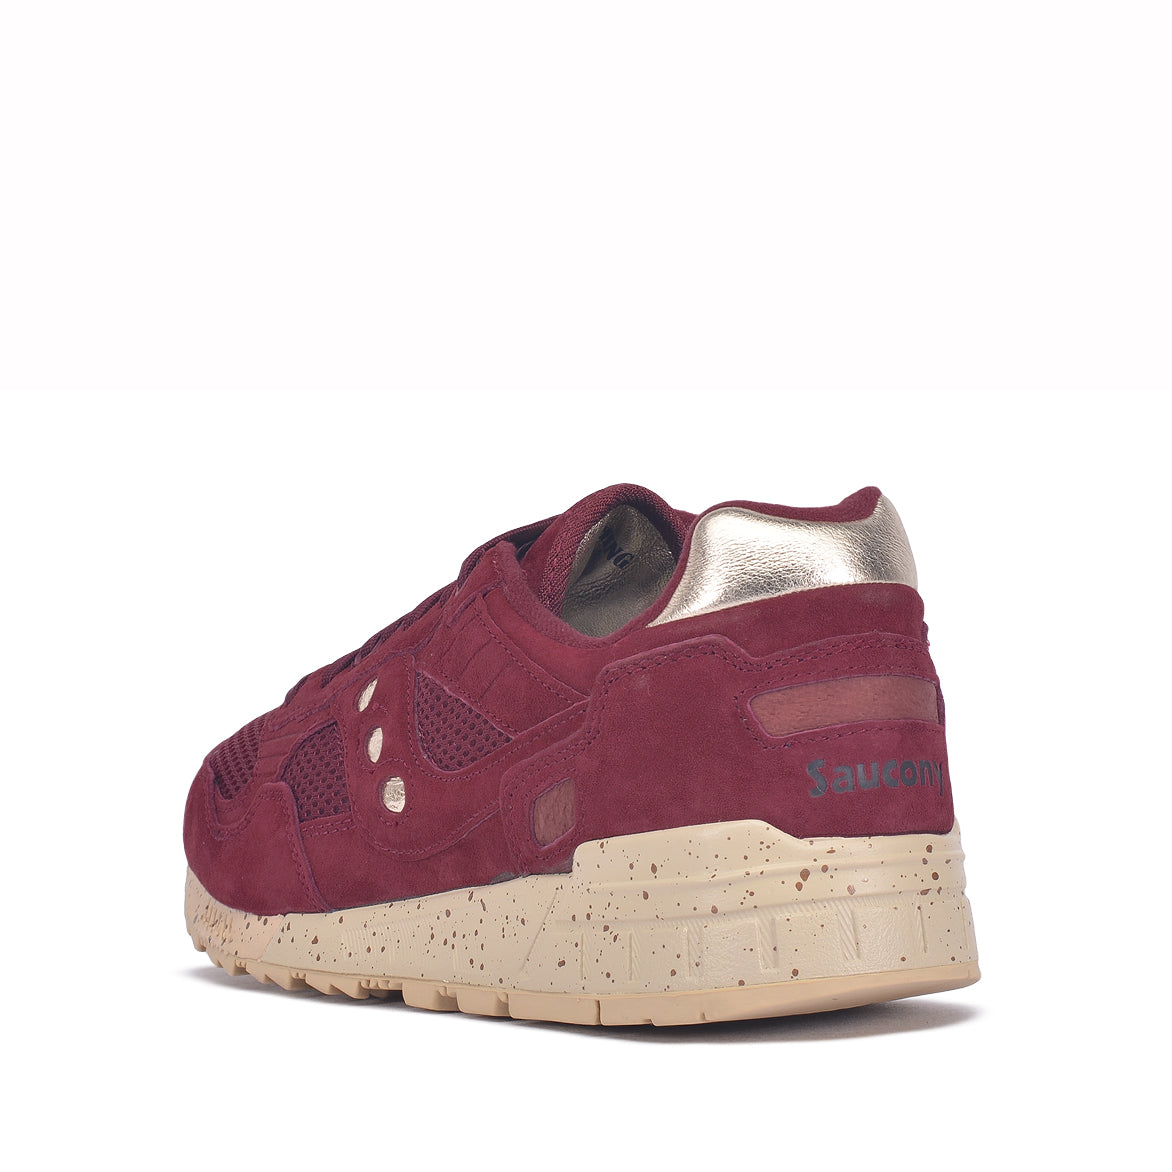 "SHADOW 5000 ""GOLD RUSH"" - MAROON / GOLD"